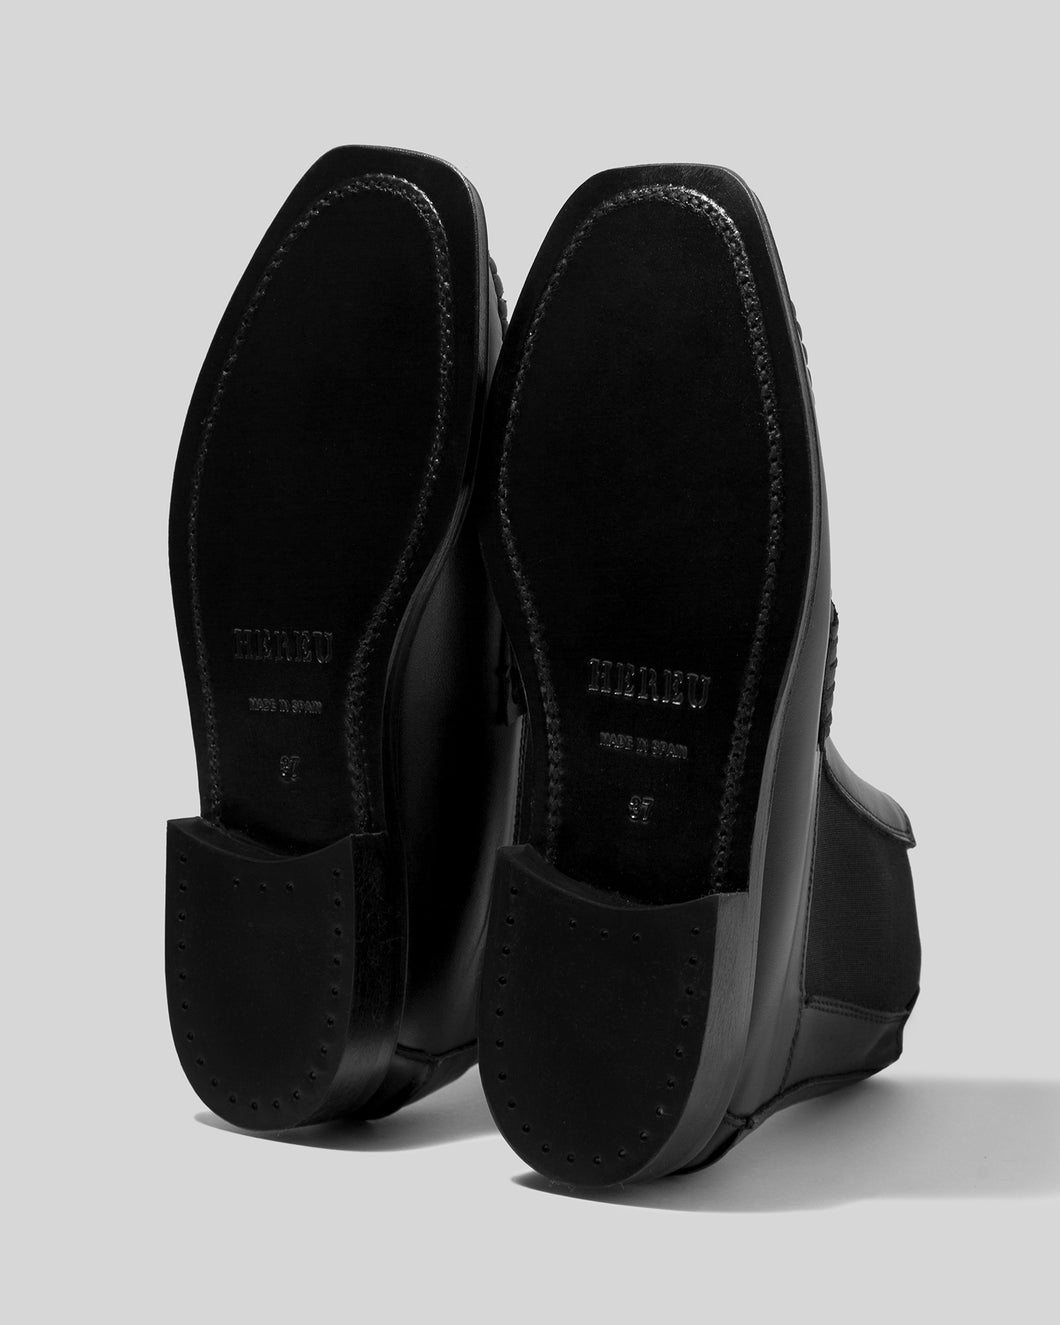 BARGA - PREORDER - Moccasin Chelsea Boot